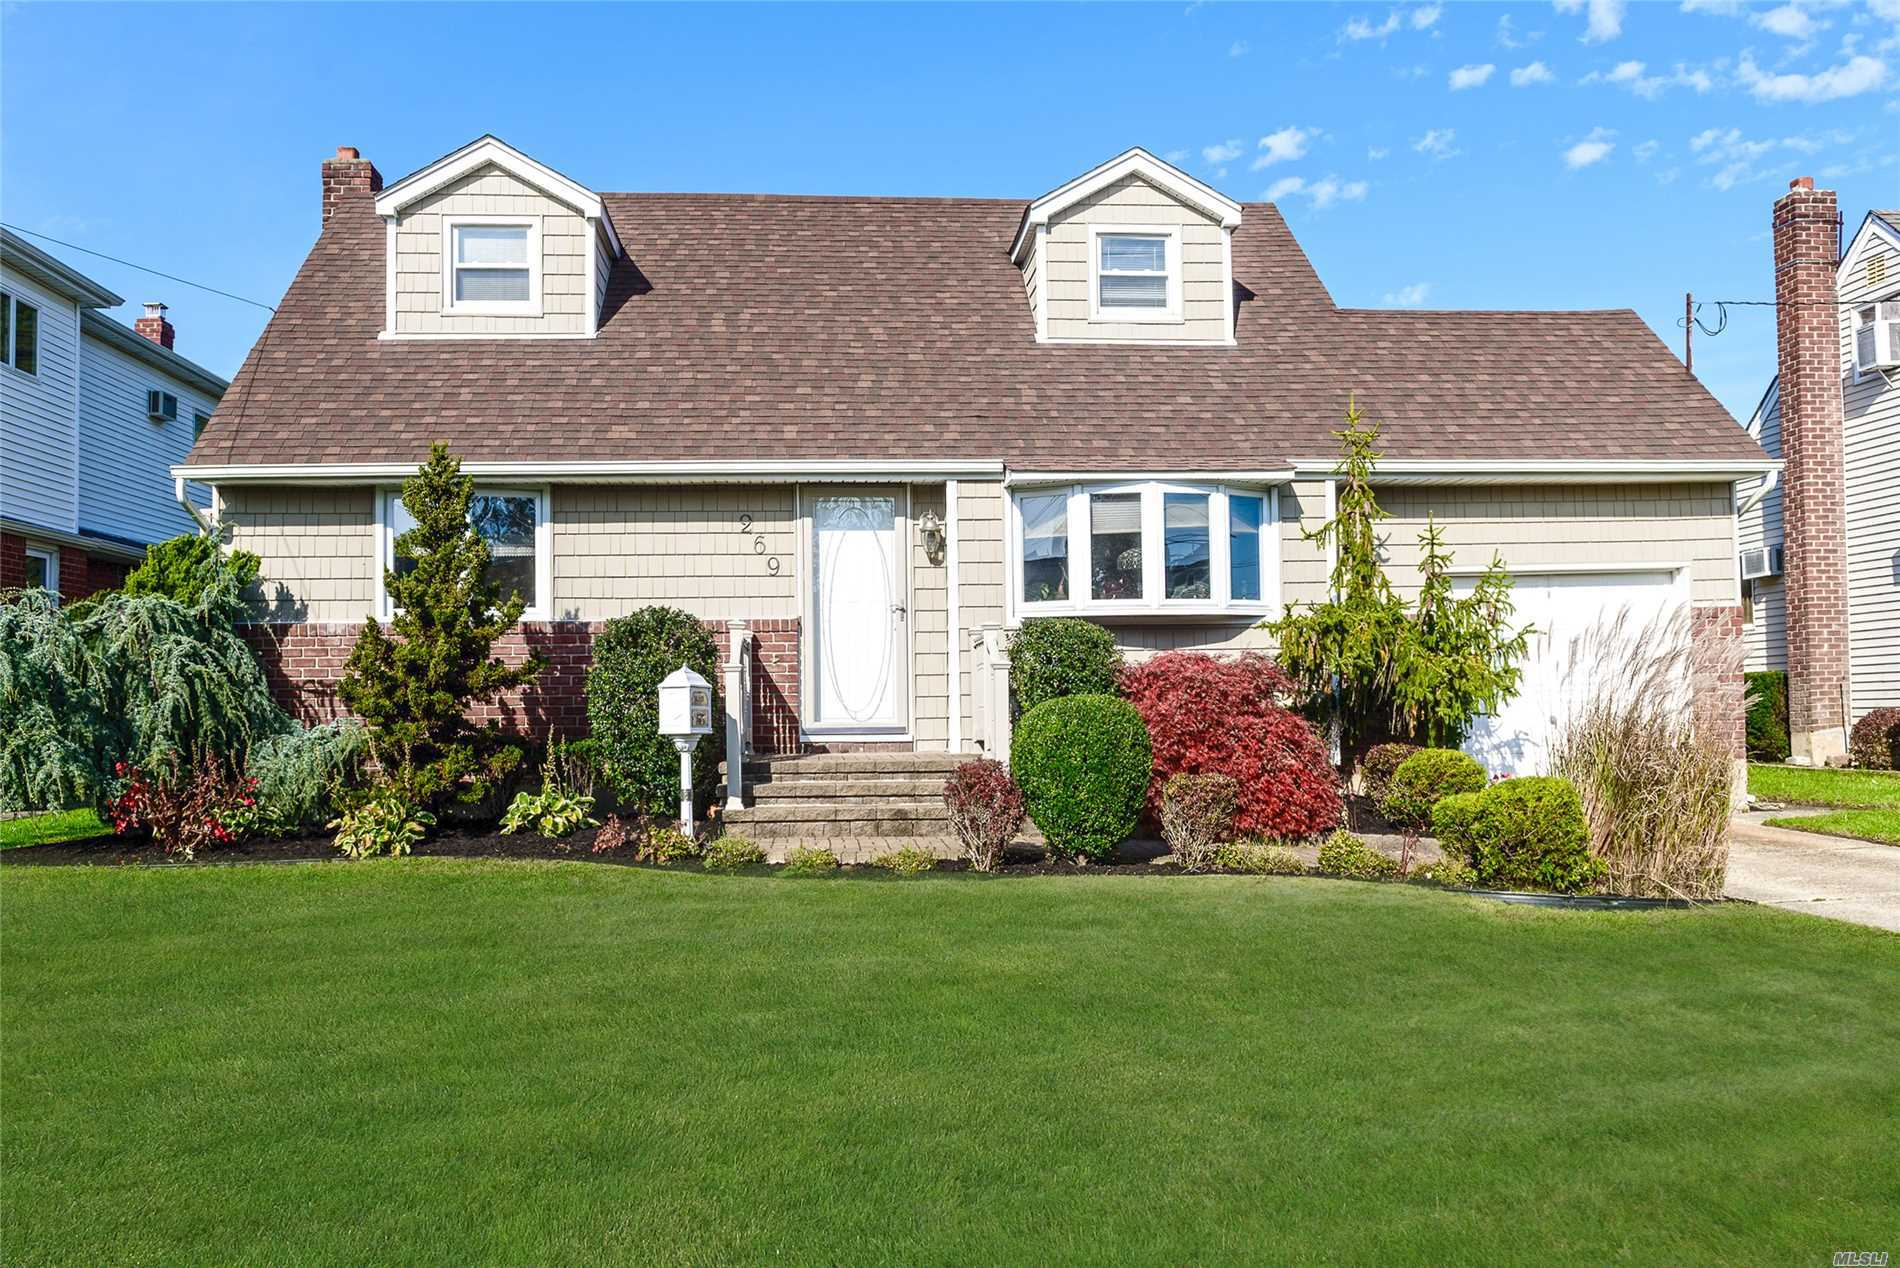 Lovely 4 Bed, 2 Bath Cape In North Massapequa For $449, 000. Situated Midblock With Beautiful Curb Appeal, This Home Is Ready For A New Owner. Boasting New Siding, Windows, Roof & Front Walkway, This Is A Great Home W/ Hardwood Floors, Finished Basement, 1 Car Garage, Private Yard & Much More!